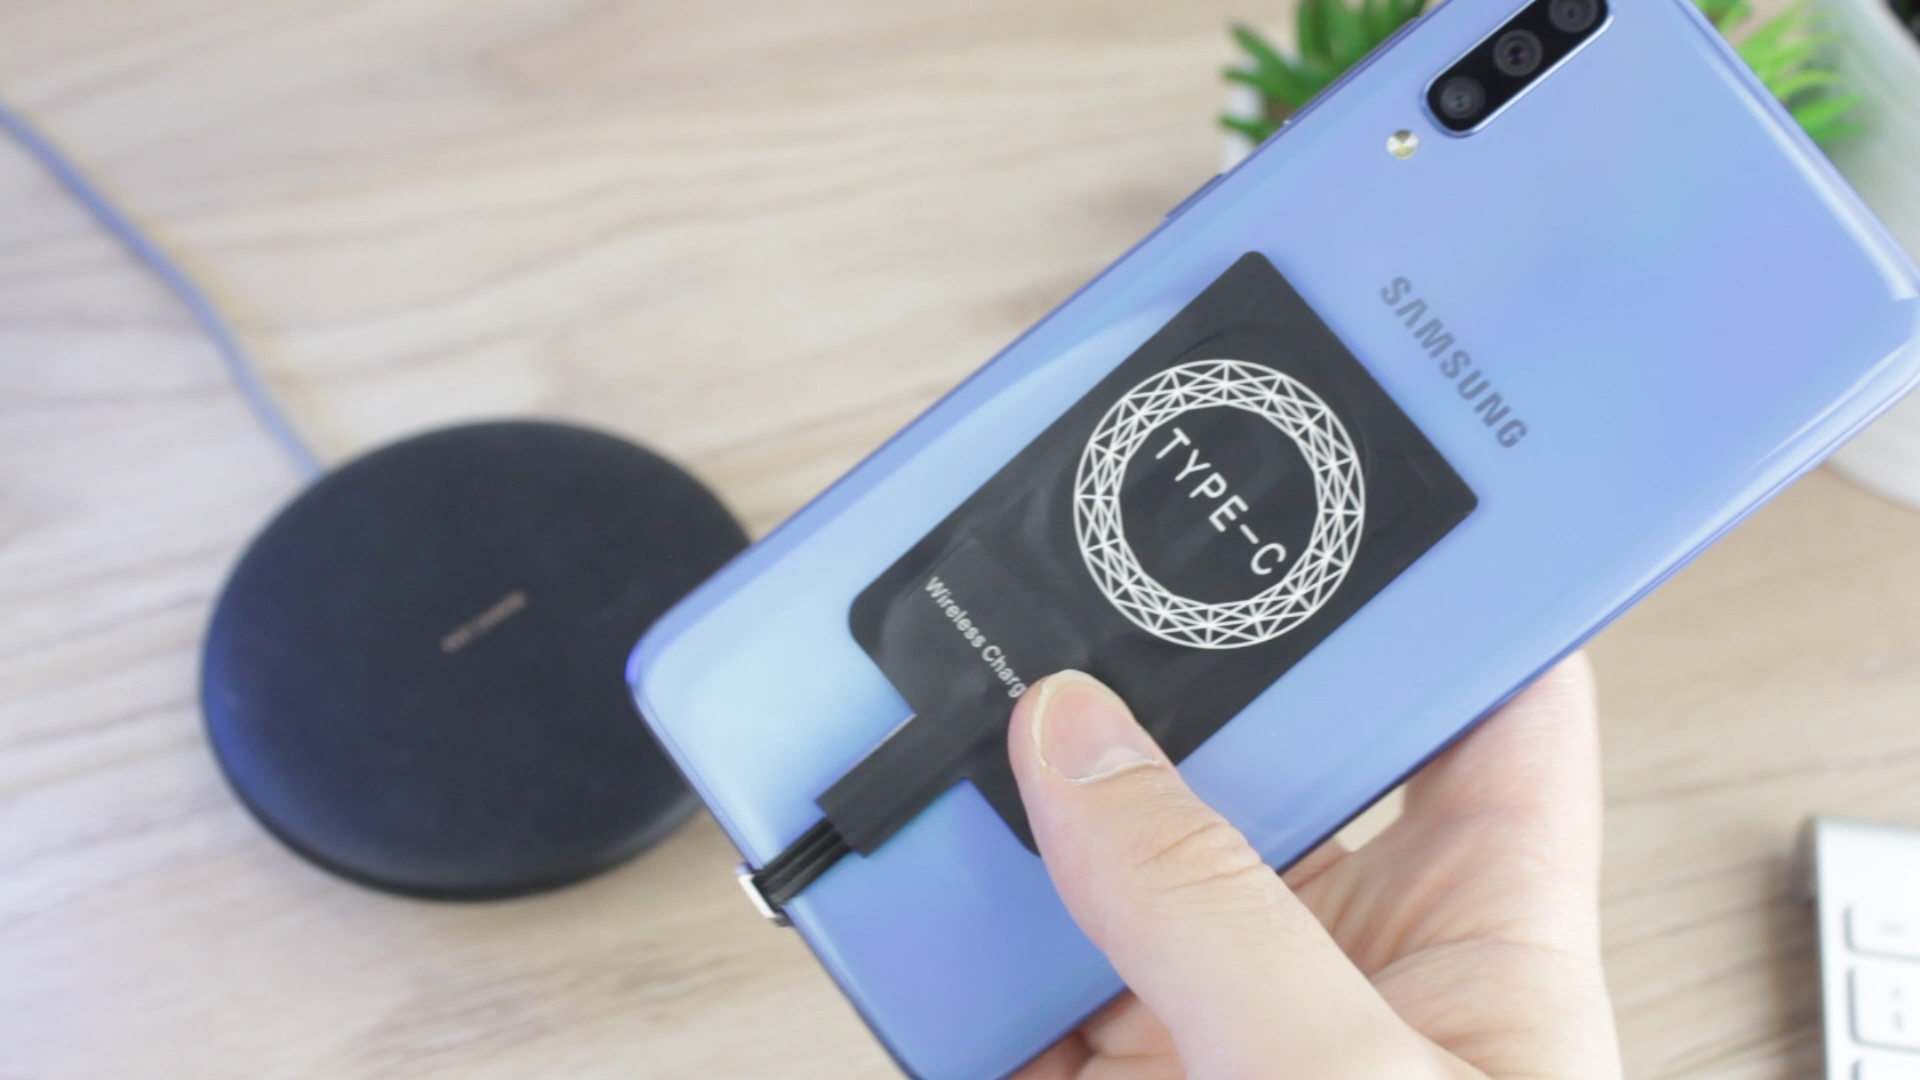 How to add wireless charging to the Samsung Galaxy A70